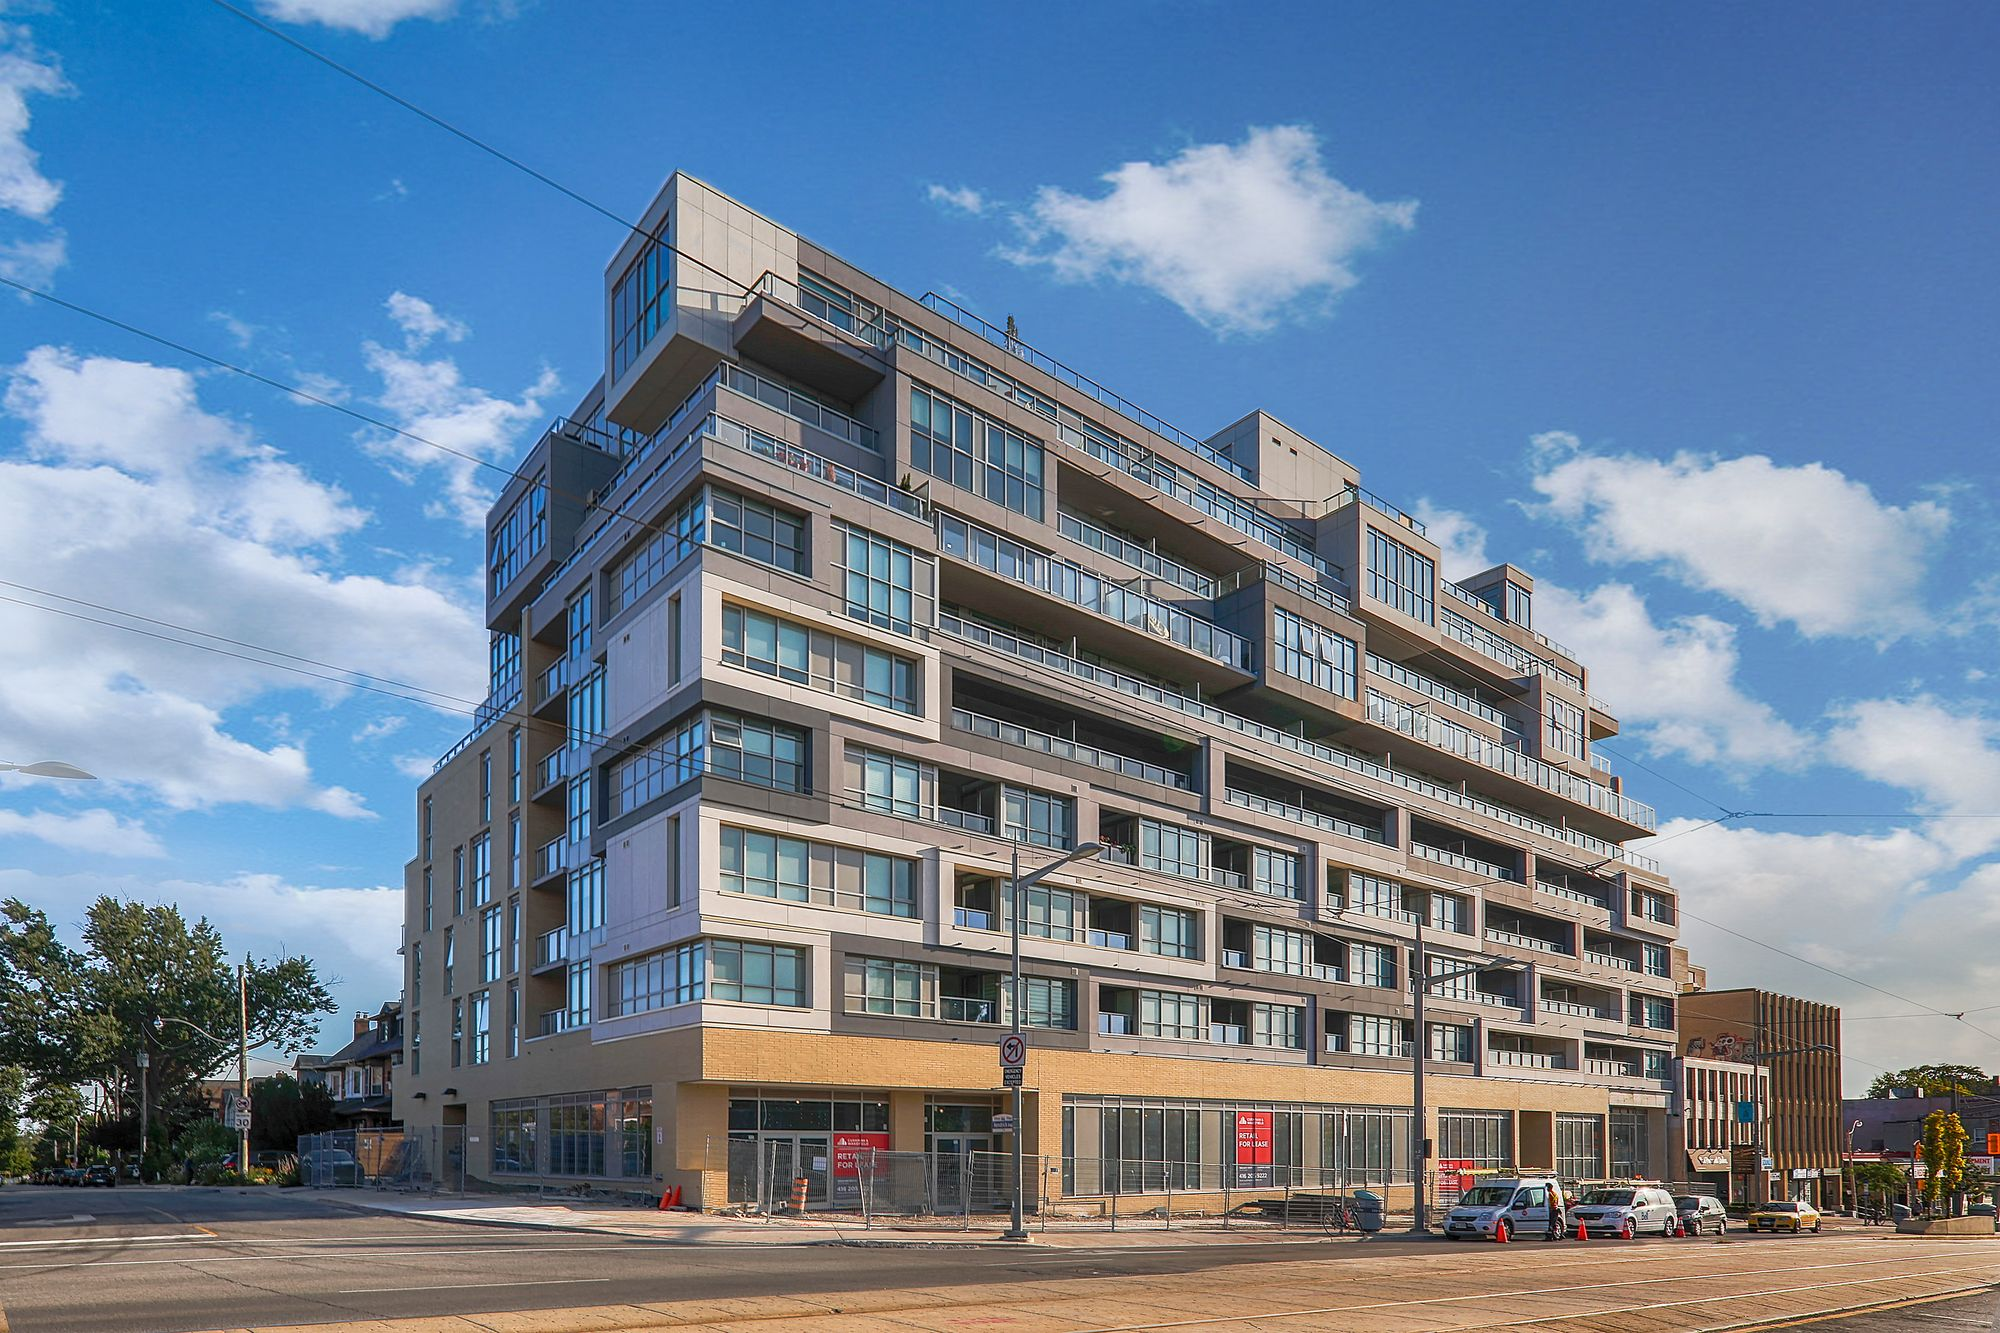 829-835 St Clair Ave W. This condo at The Nest Condos is located in  Midtown, Toronto - image #1 of 2 by Strata.ca